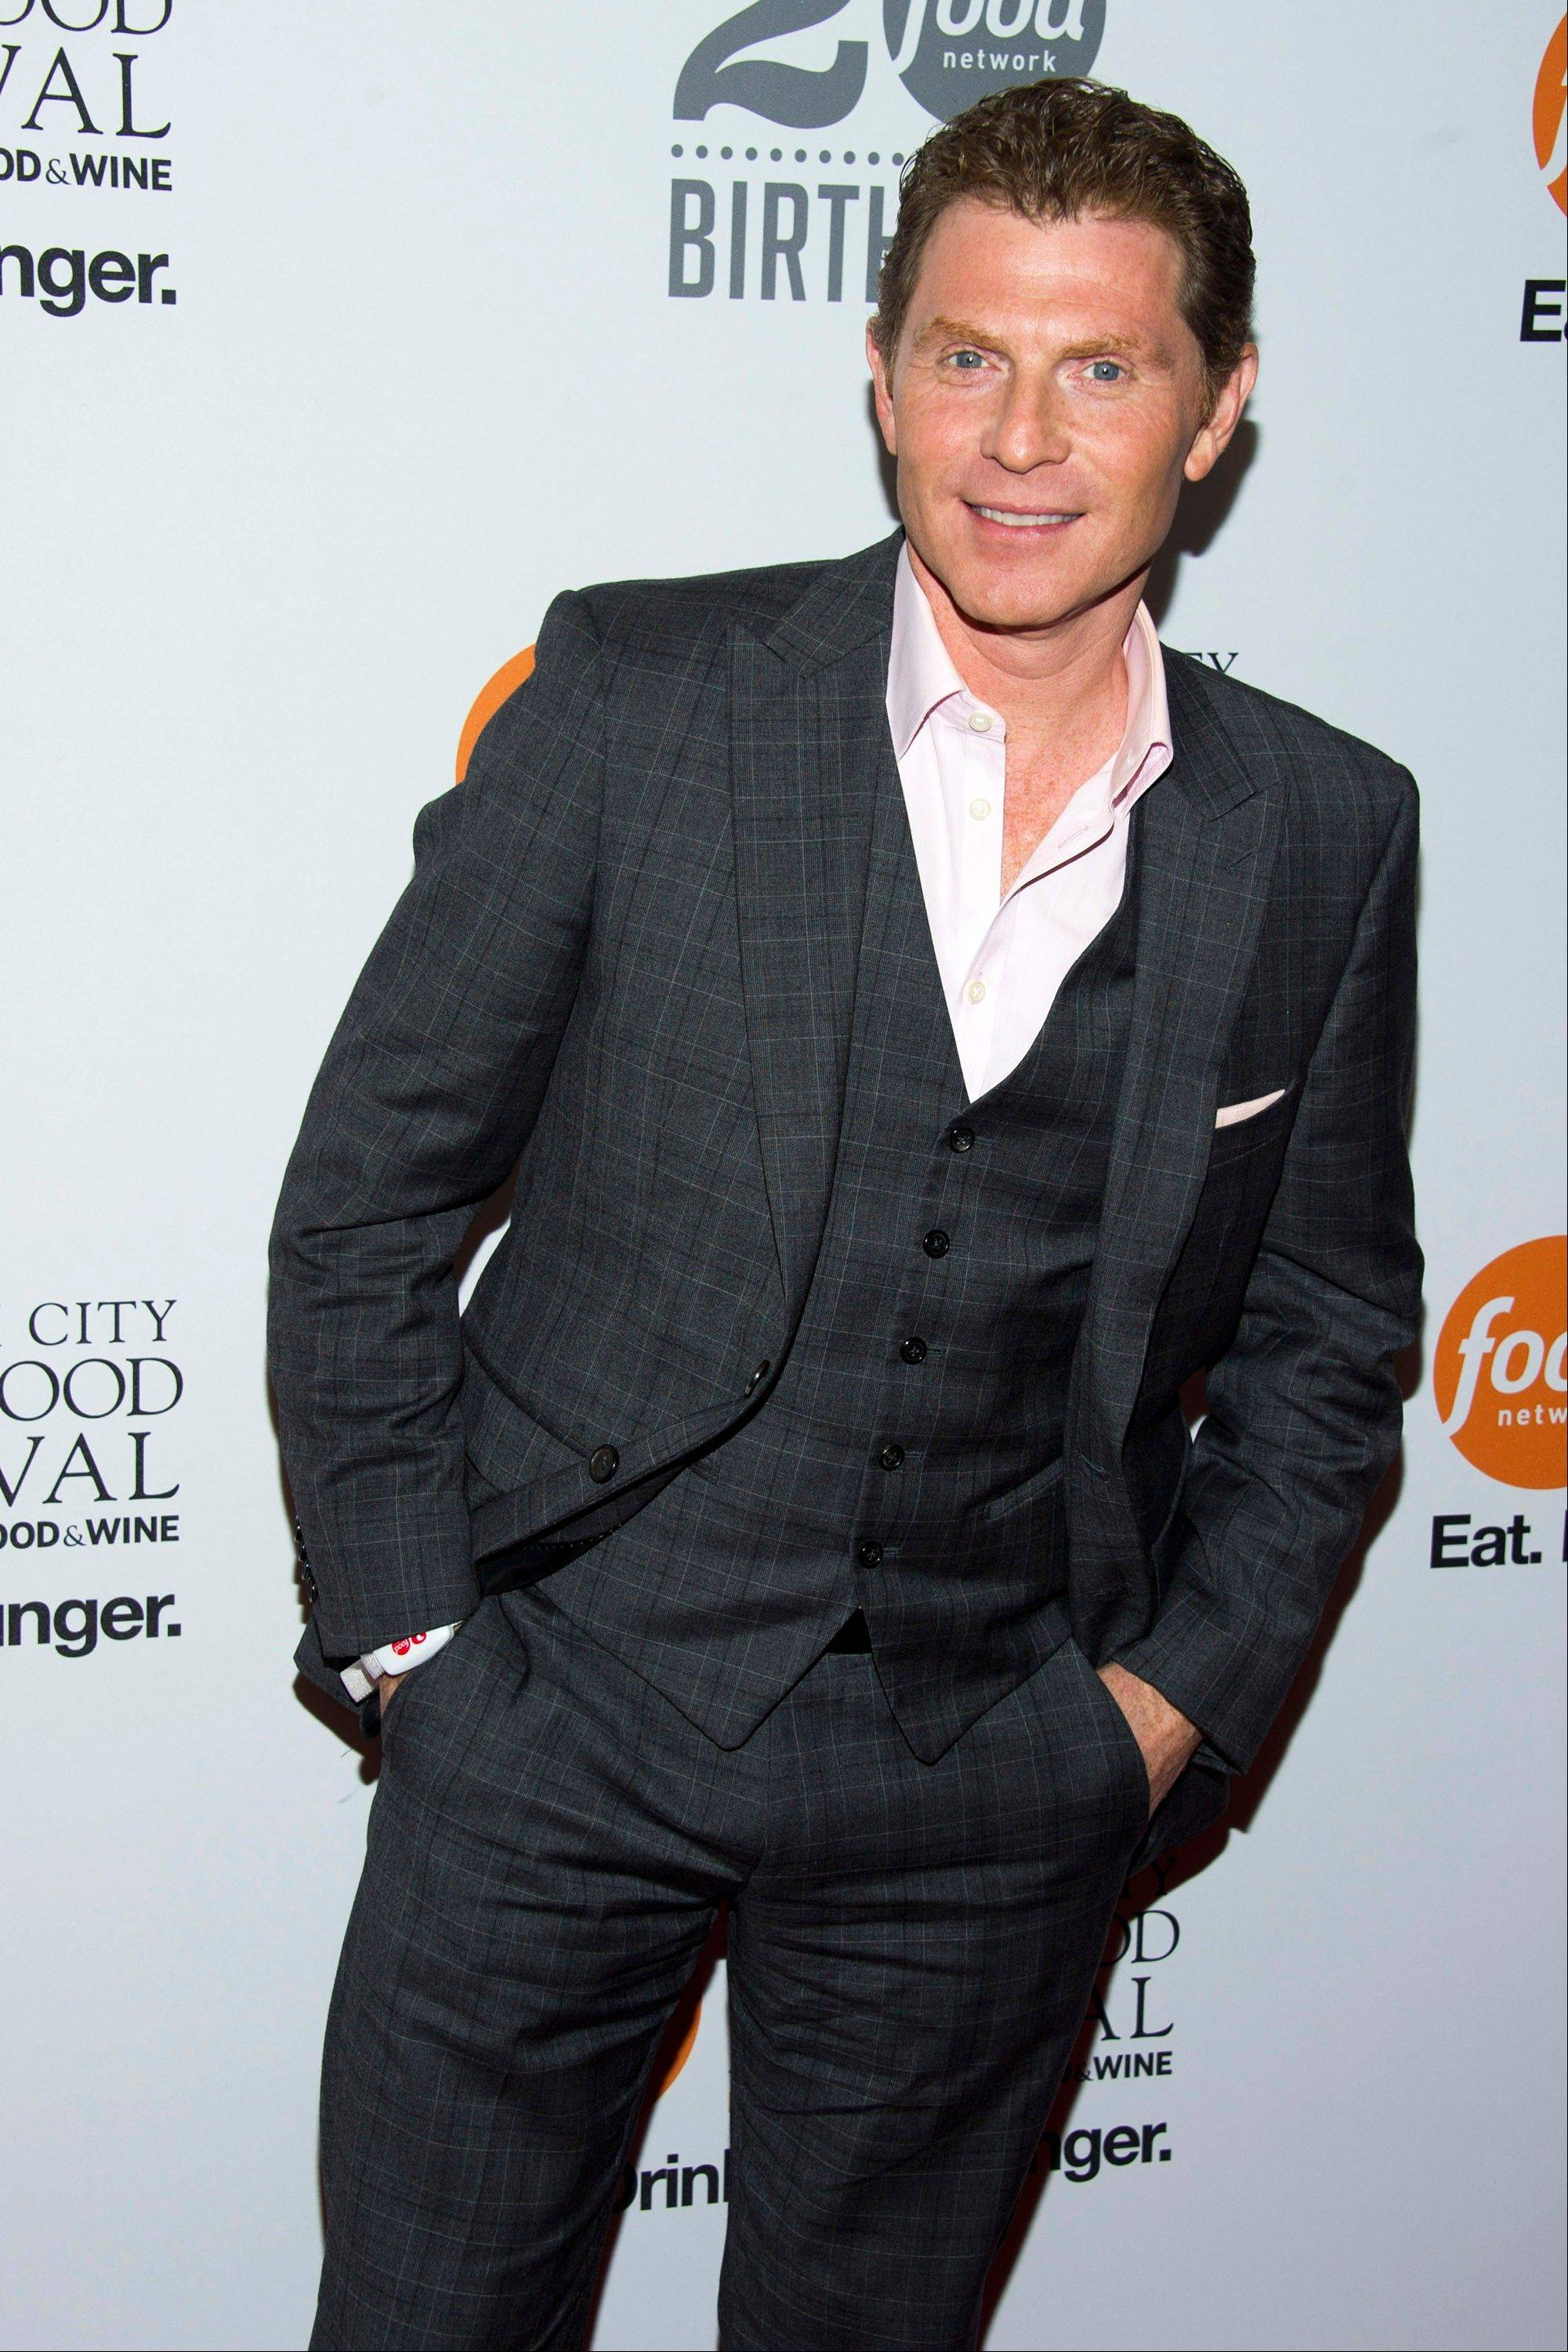 Bobby Flay attends the Food Network's 20th birthday party on Thursday in New York.